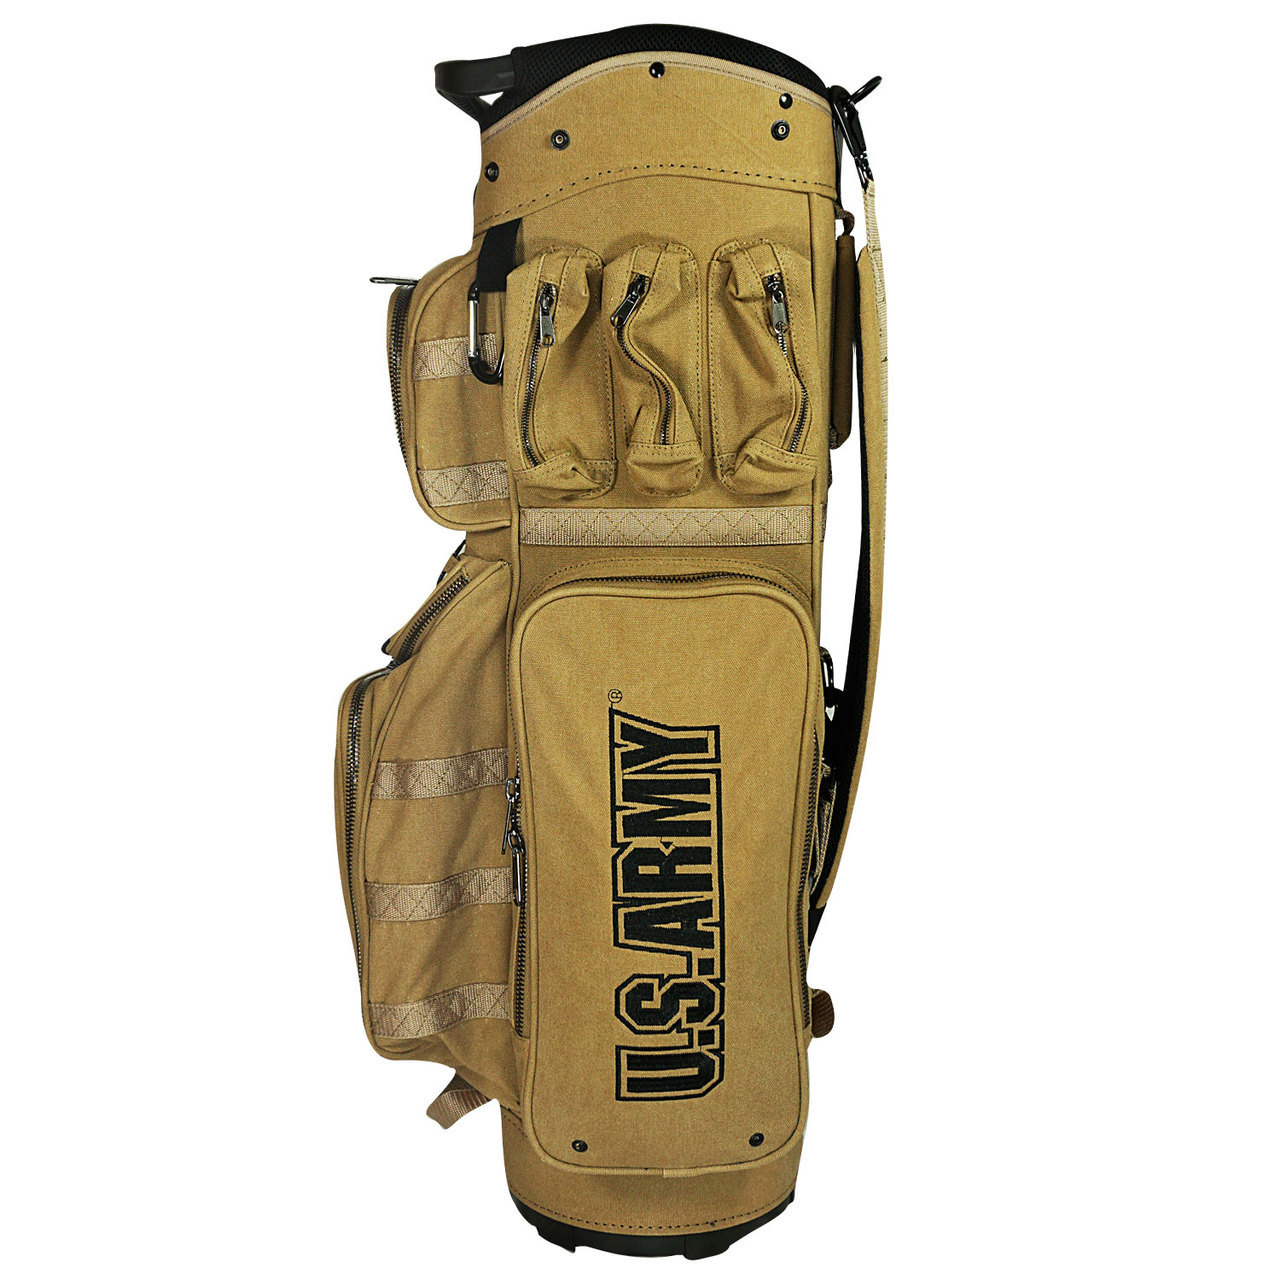 Army - Active Duty Cart Bag - Hot-Z Military Golf Bags